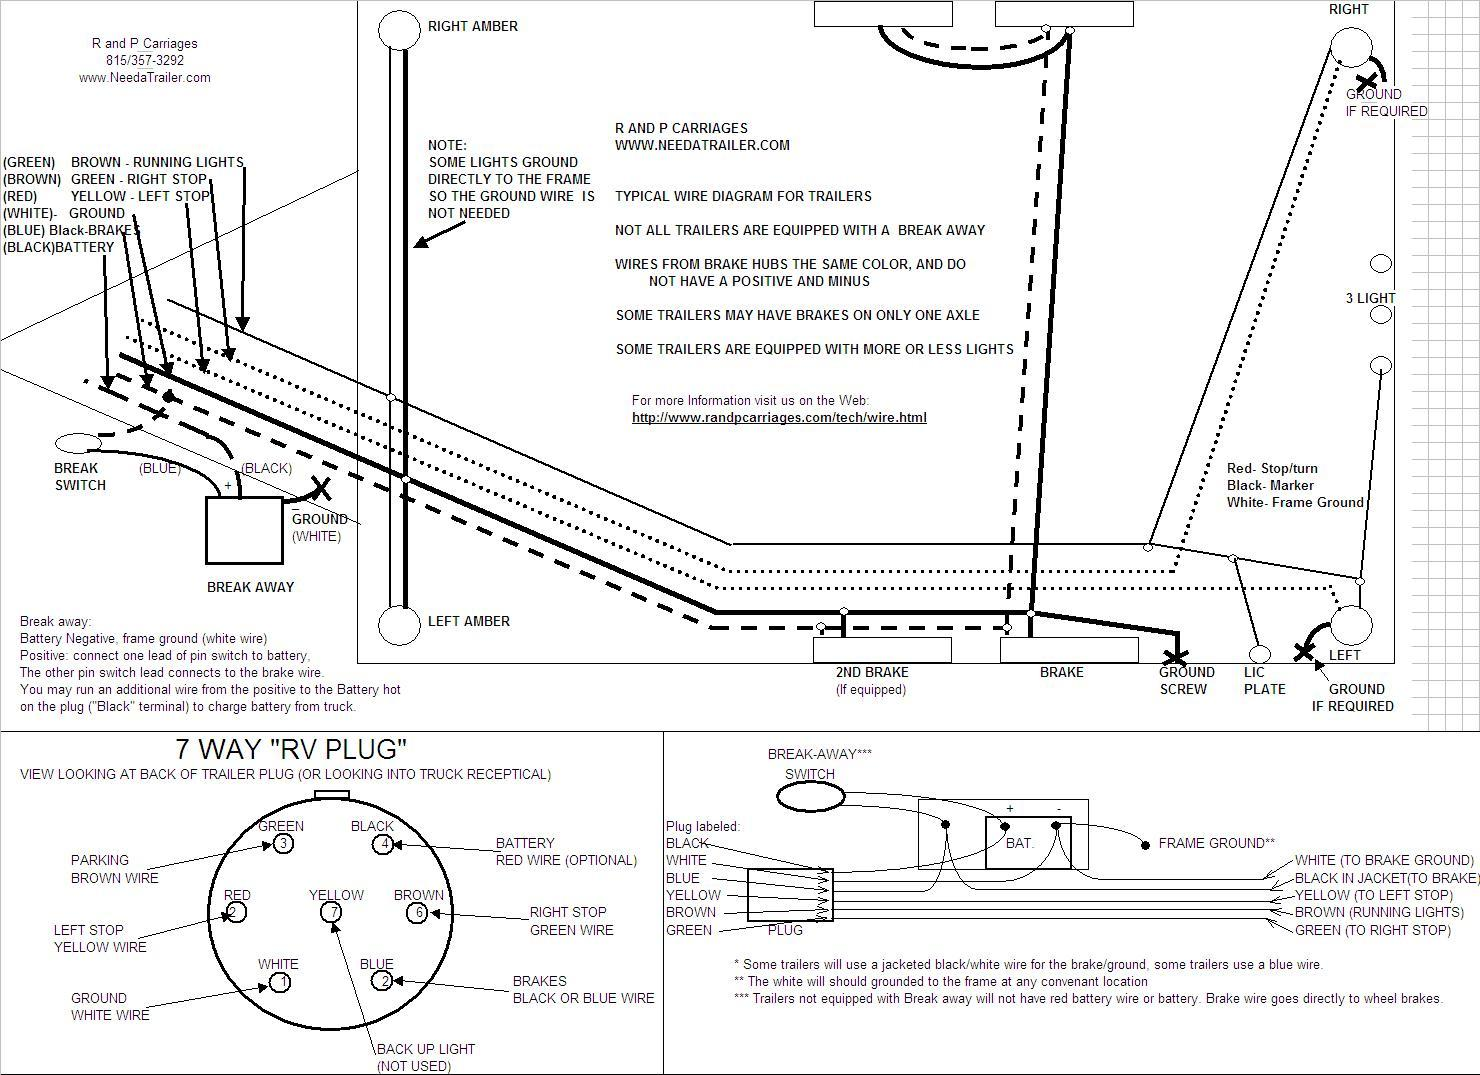 7 way wiring diagram 7 way plug wiring diagram 7 way trailer light diagram \u2022 free dodge 7 pin trailer wiring diagram at soozxer.org